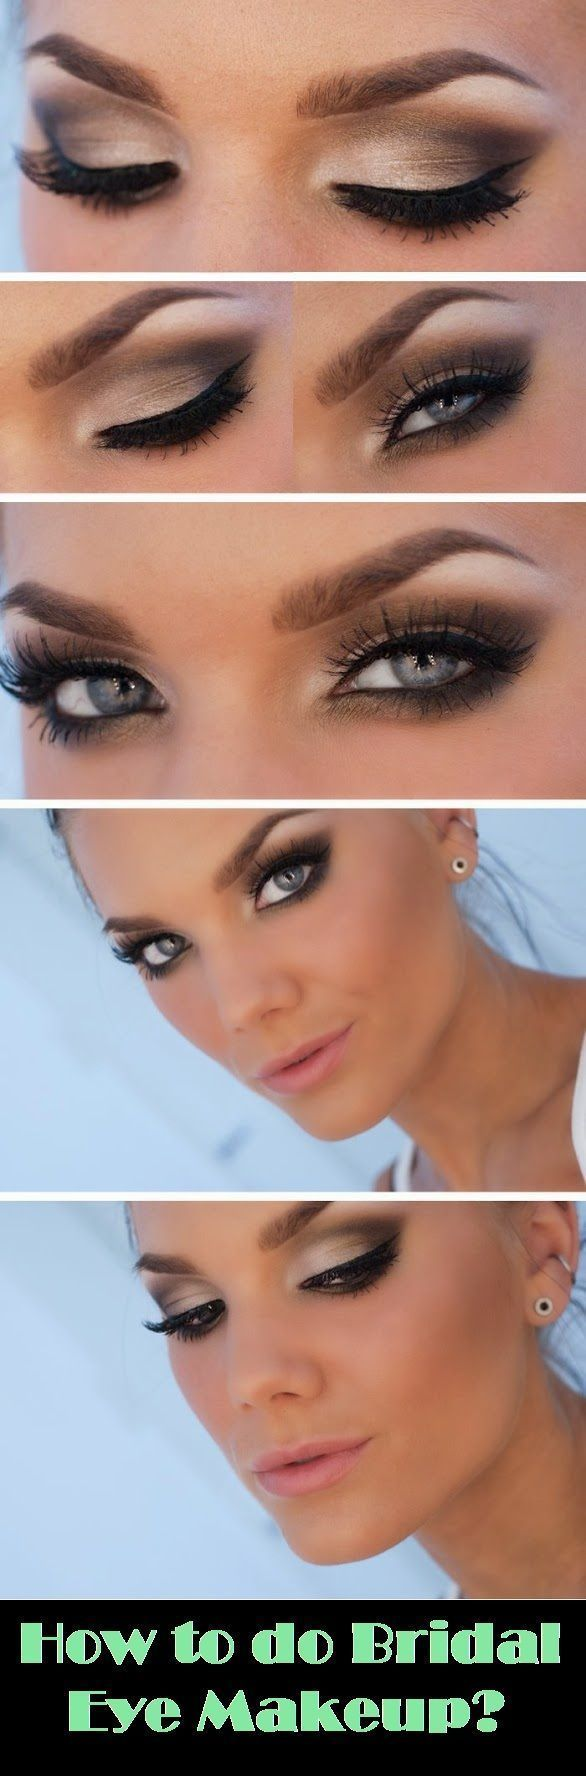 best 25 eye makeup ideas on pinterest makeup tips eyeshadow eye shadow and makeup eyeshadow. Black Bedroom Furniture Sets. Home Design Ideas